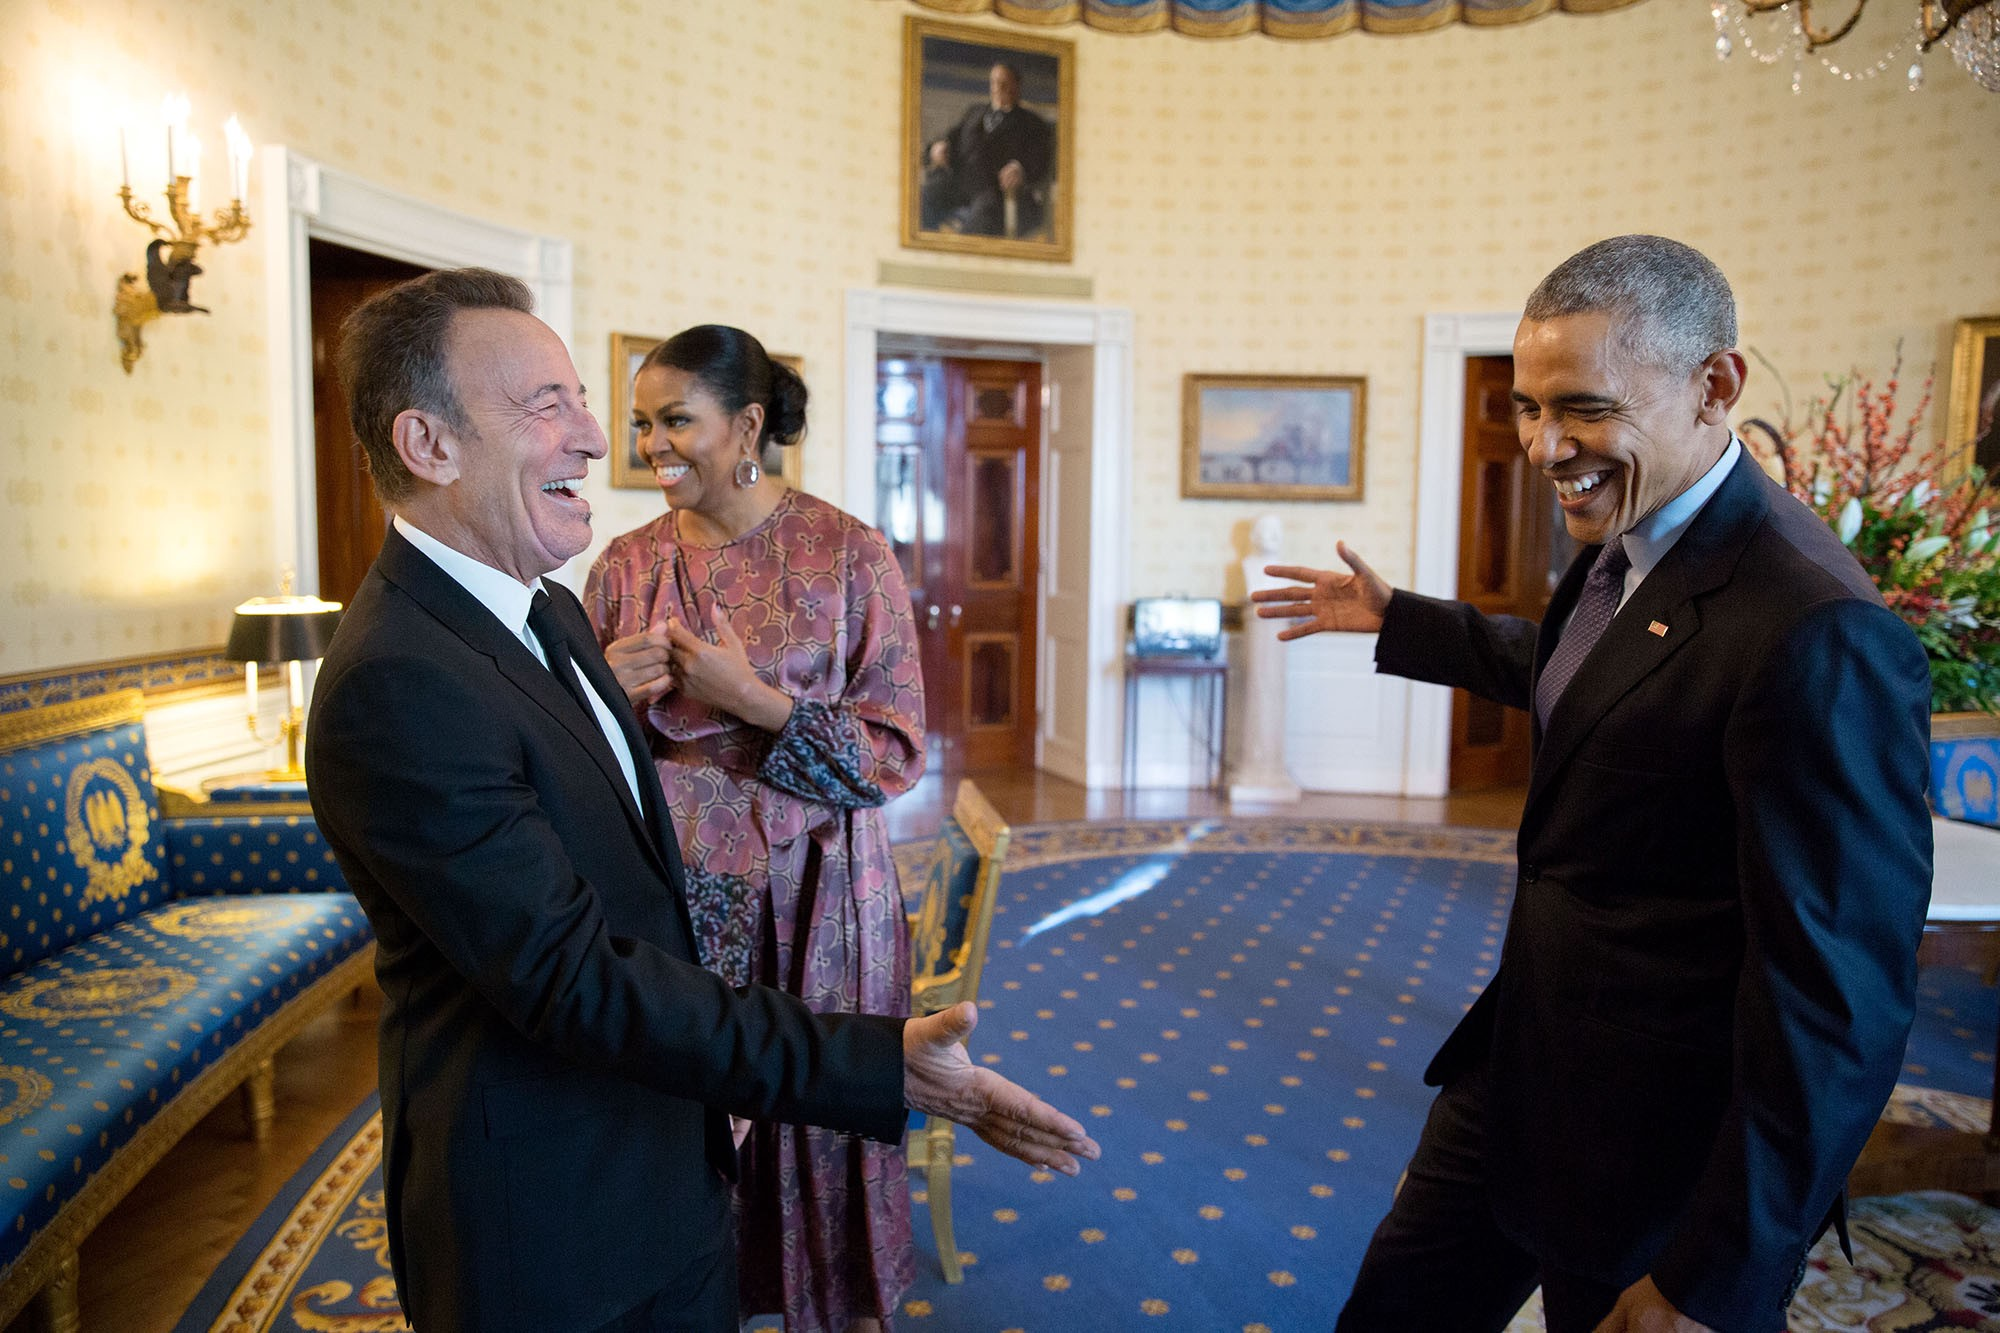 "Nov. 22, 2016 ""Bruuuuuce! The President reaches out to shake hands with Bruce Springsteen in the Blue Room of the White House prior to the Presidential Medal of Freedom ceremony. I'm so happy for Bruce, having been a fan of his for almost 30 years during which I've seen at least 35 of his concerts."" (Official White House Photo by Pete Souza)"